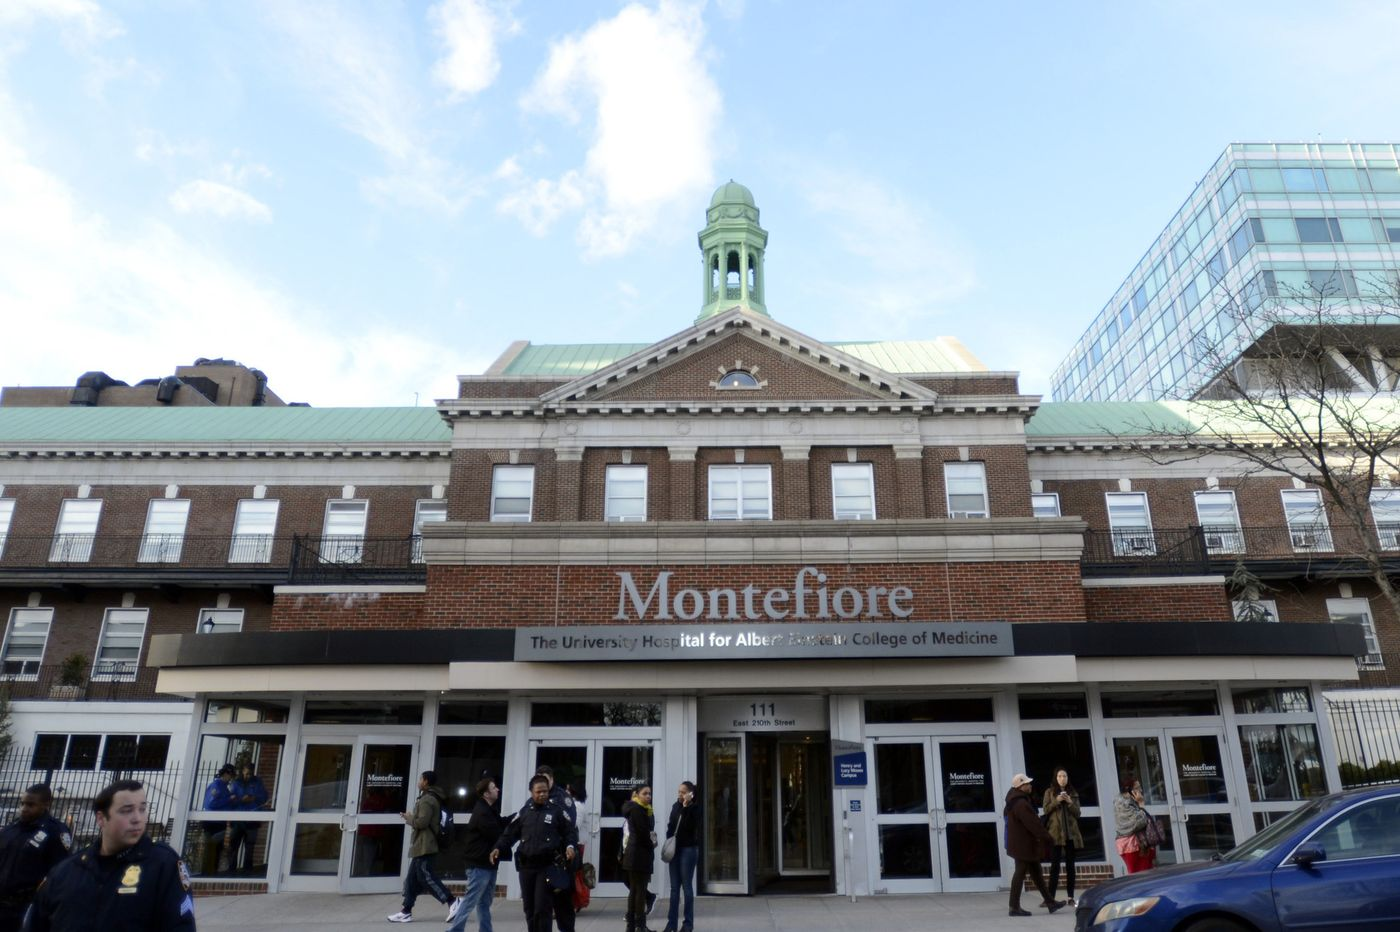 Overcrowding at Montefiore is a bitter pill to swallow for nurses and patients https://t.co/Vs5i0i7wOM https://t.co/OerJp4xOKj